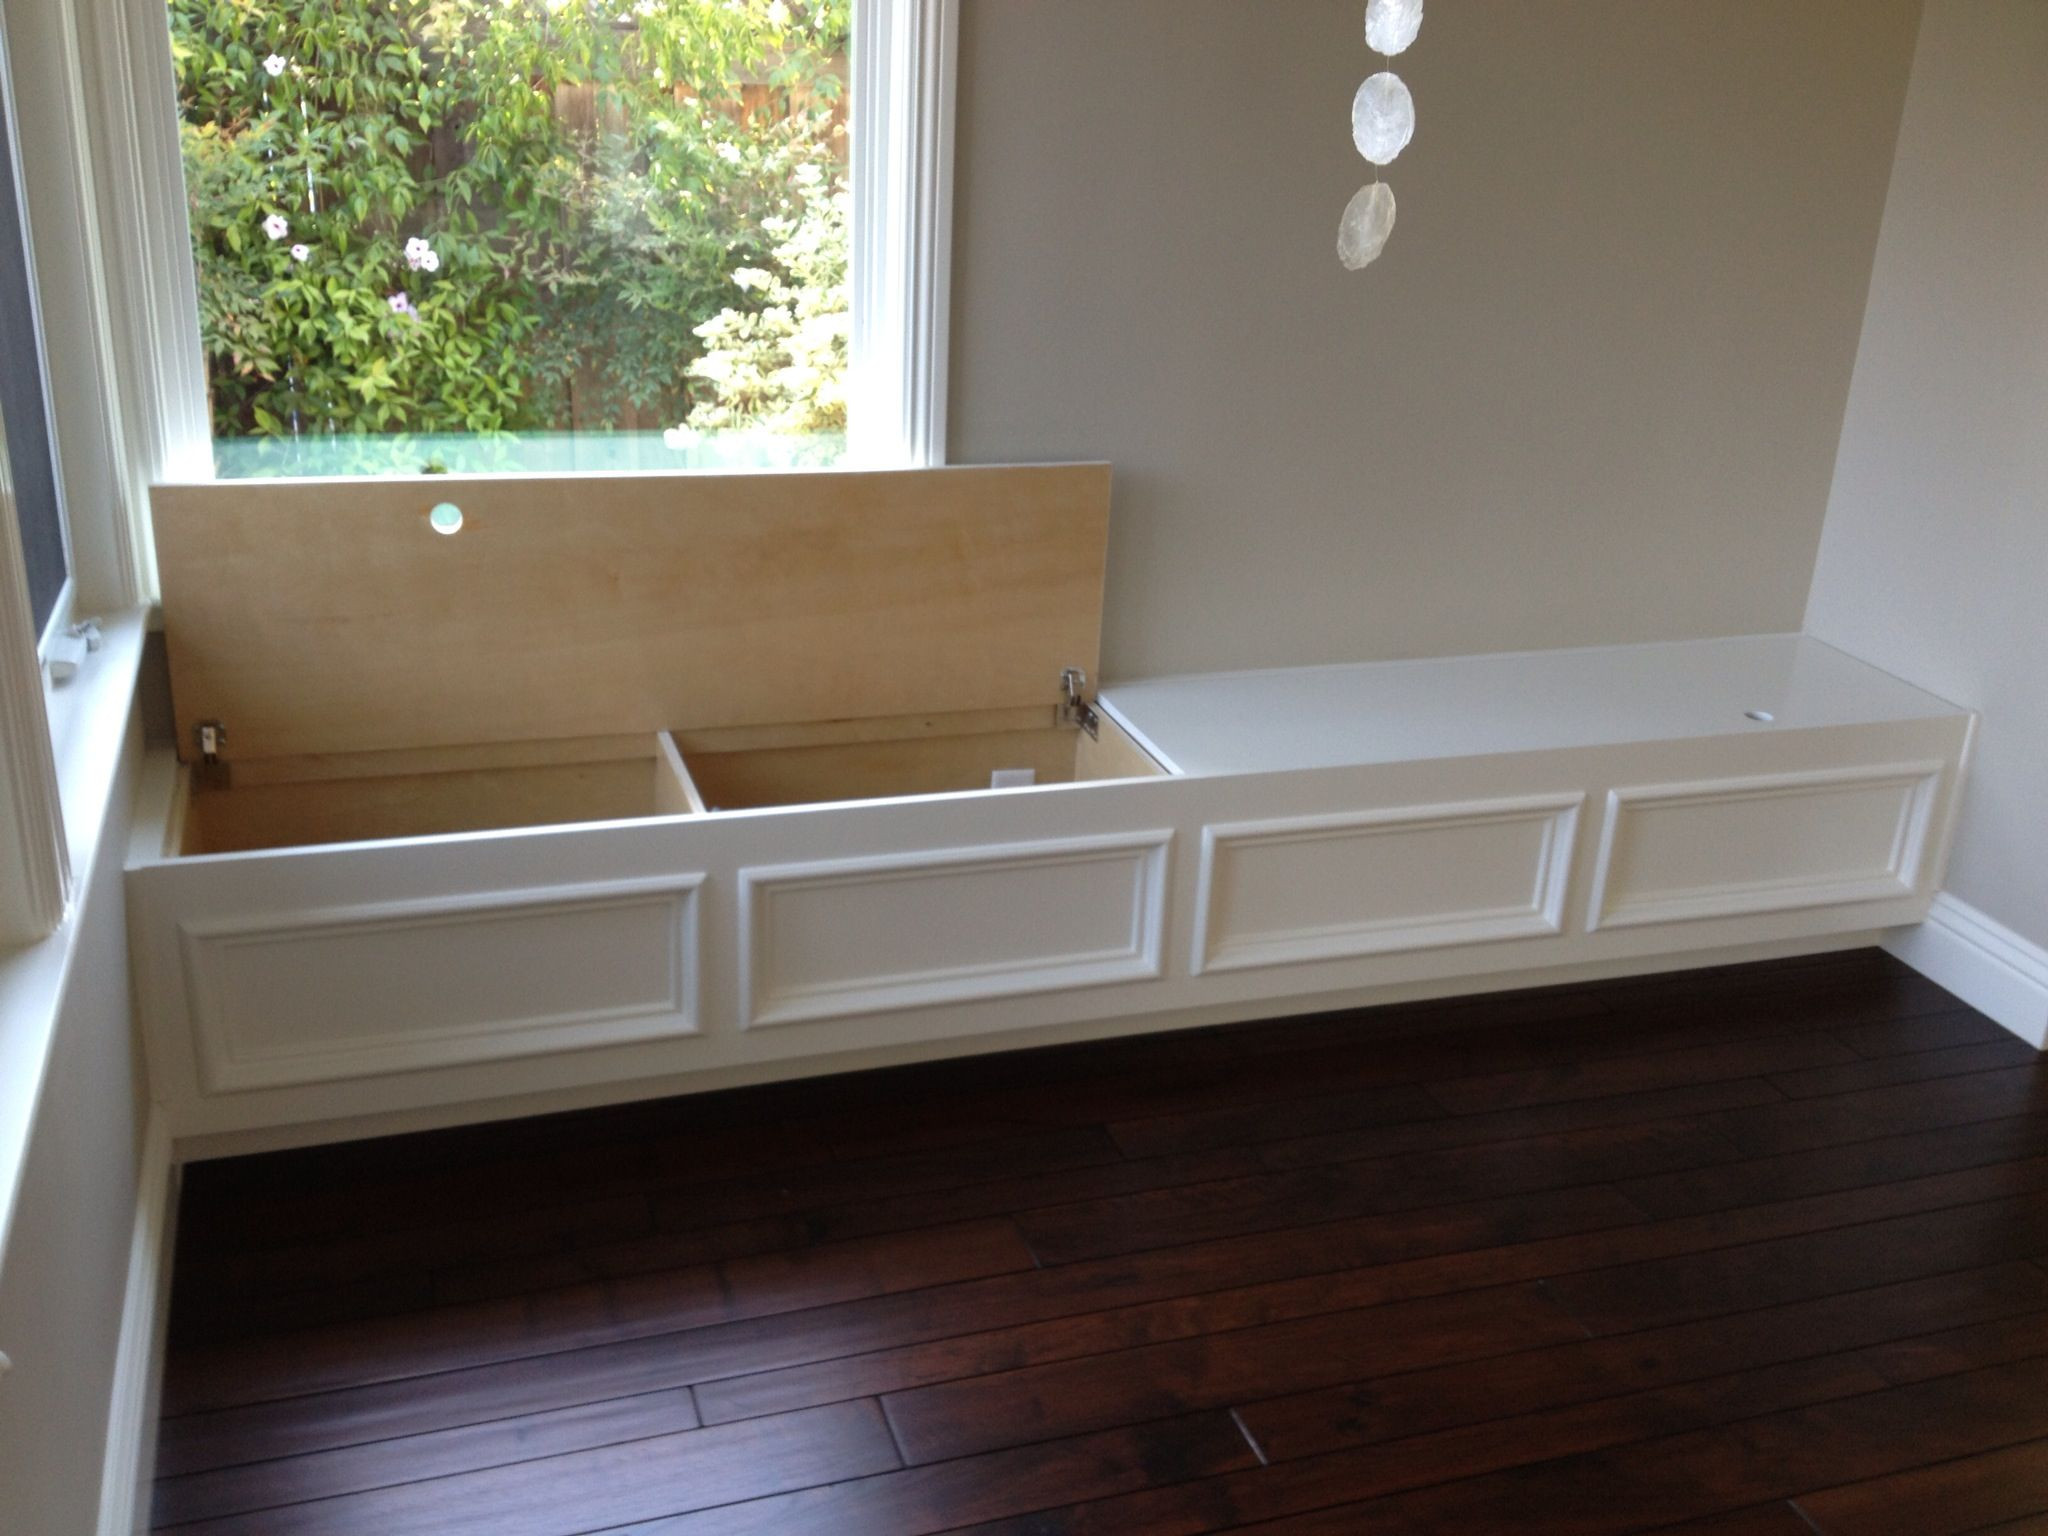 Best ideas about DIY Built In Bench . Save or Pin Built in bench seat with storage Put along wall in family Now.